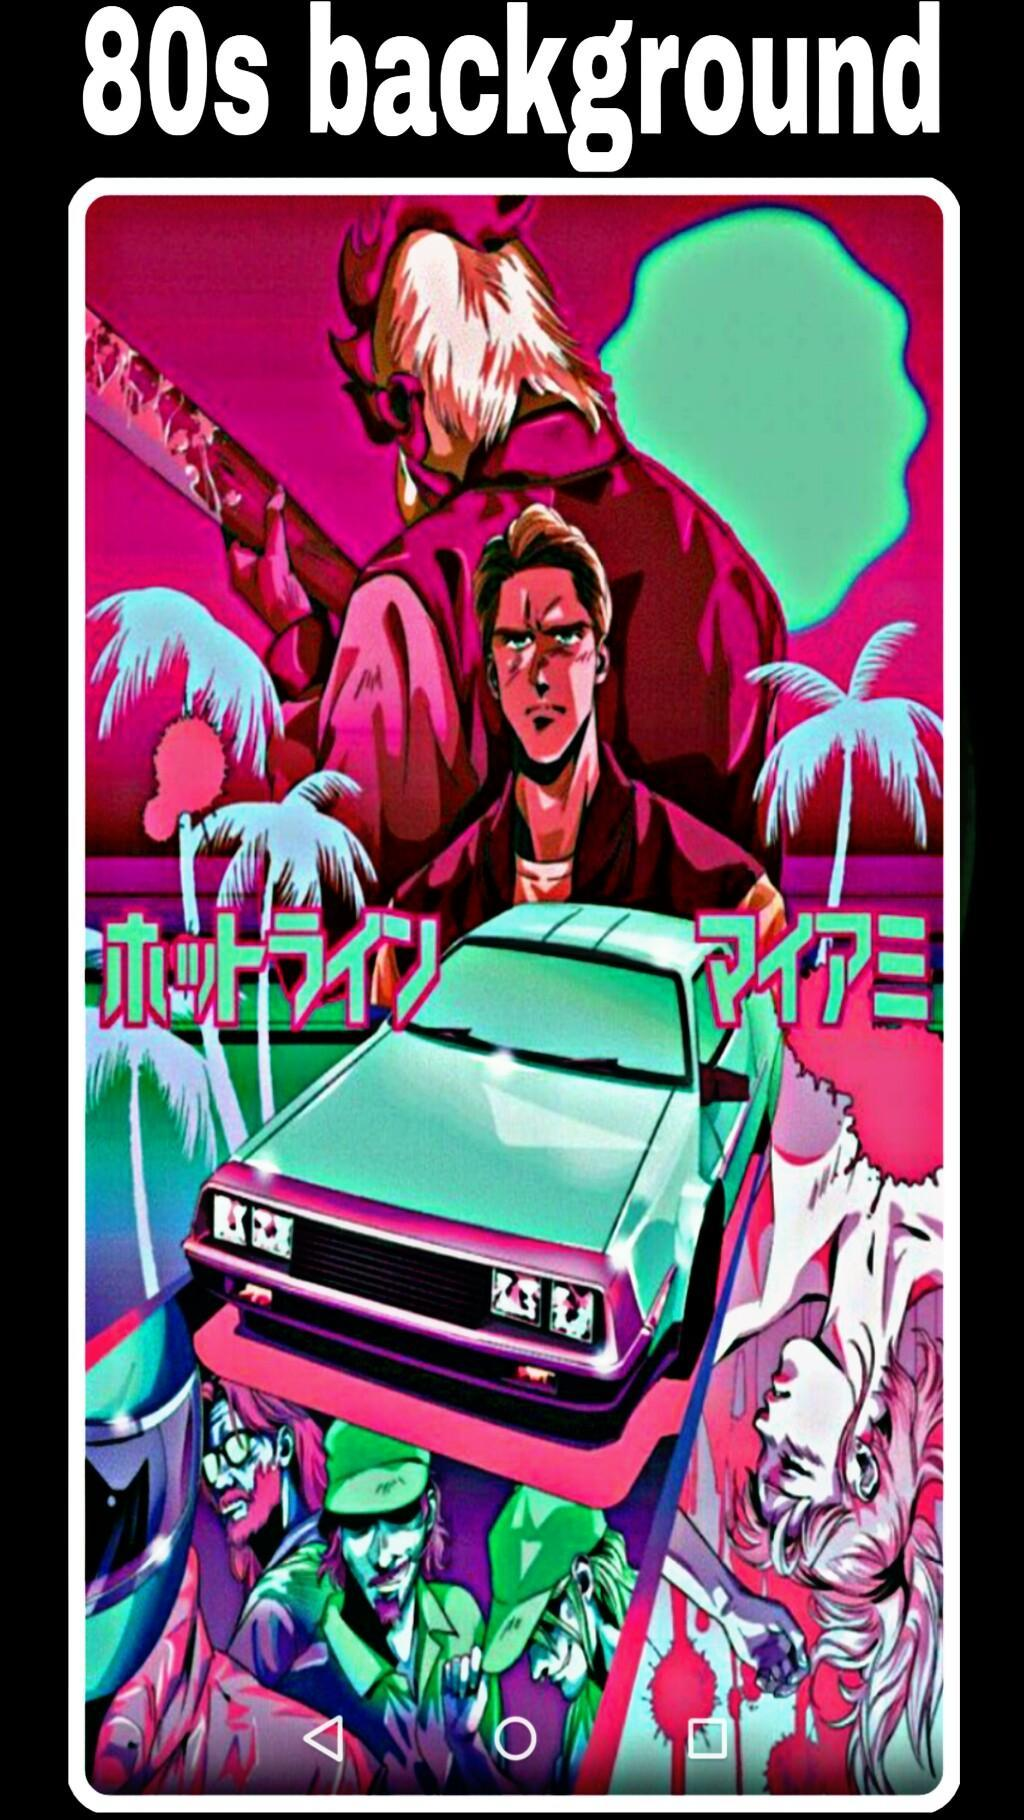 80s background for Android - APK Download